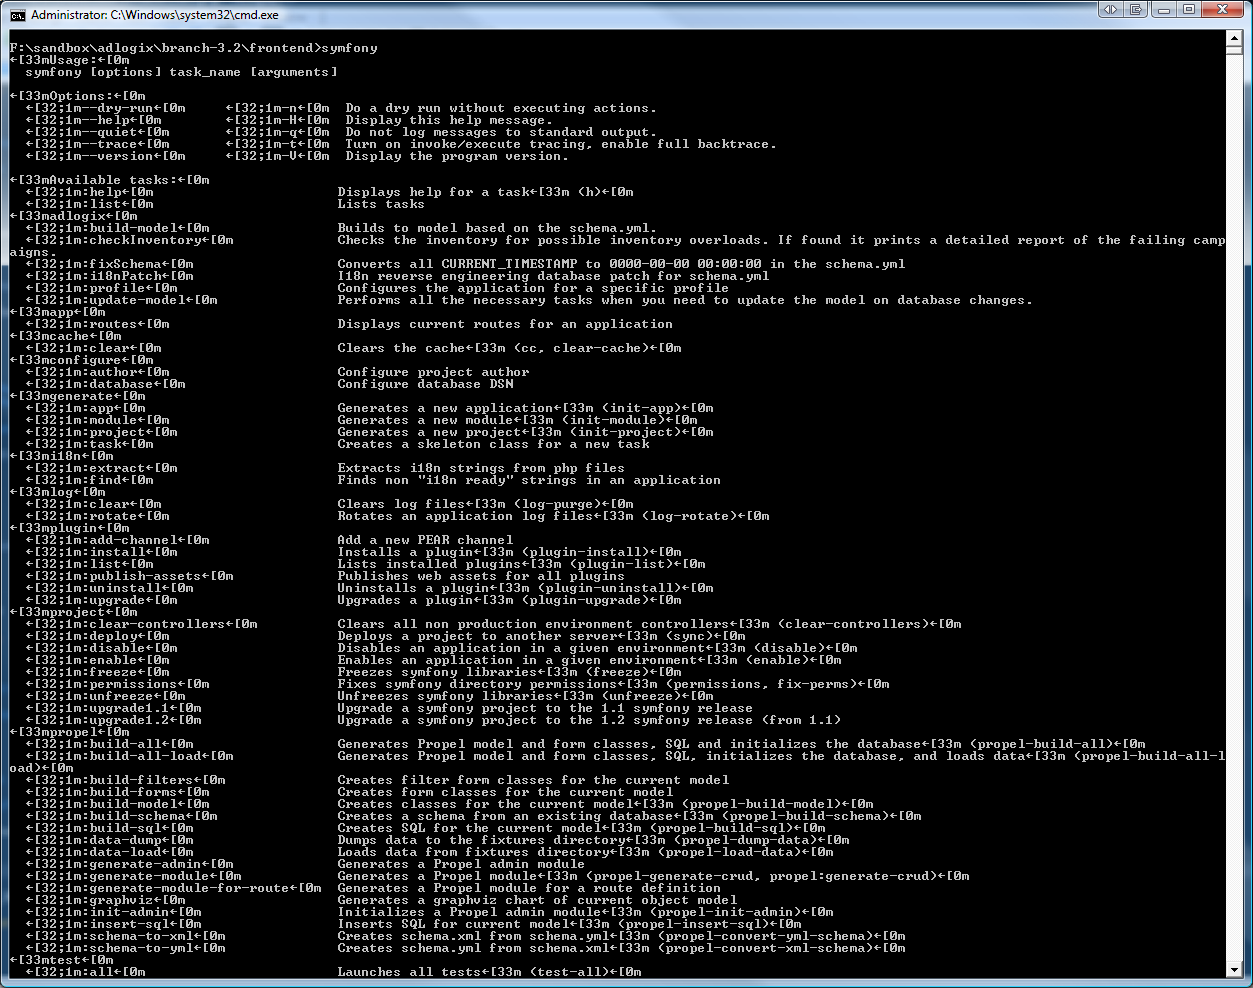 DOS Command Prompt